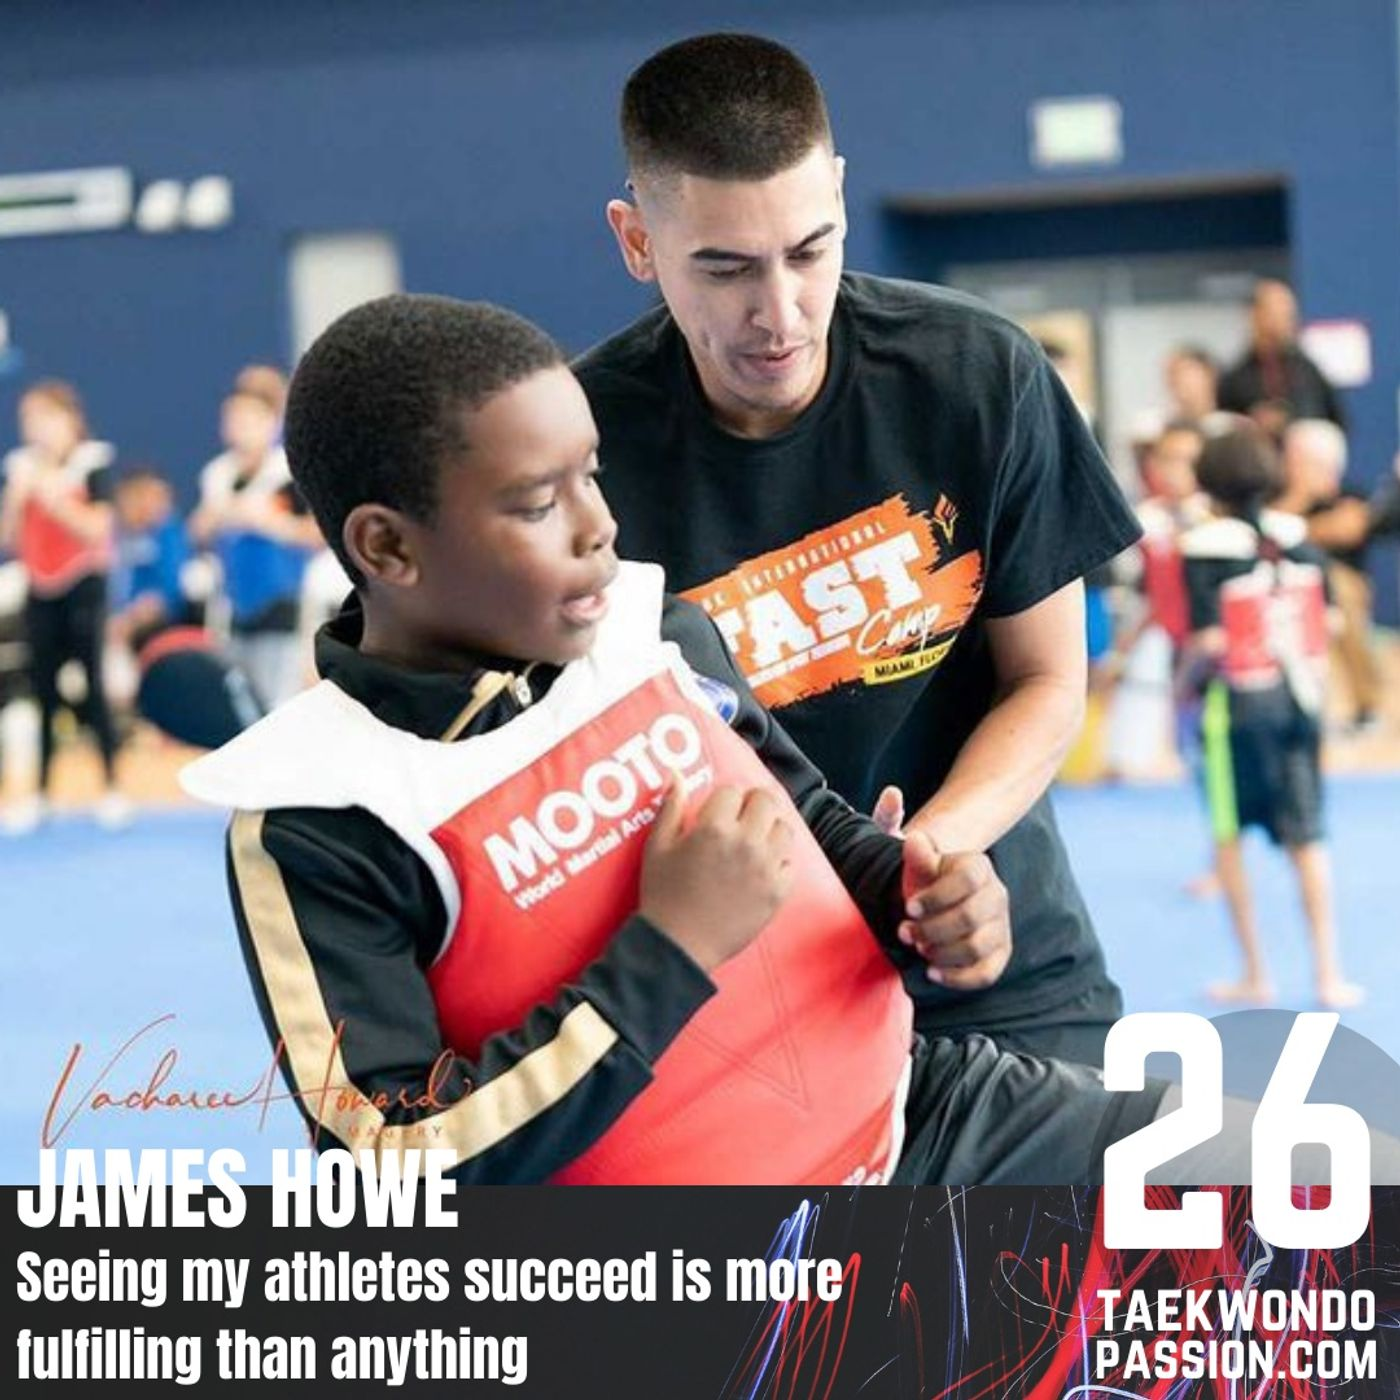 James Howe: Seeing my athletes succeed is more fulfilling than anything